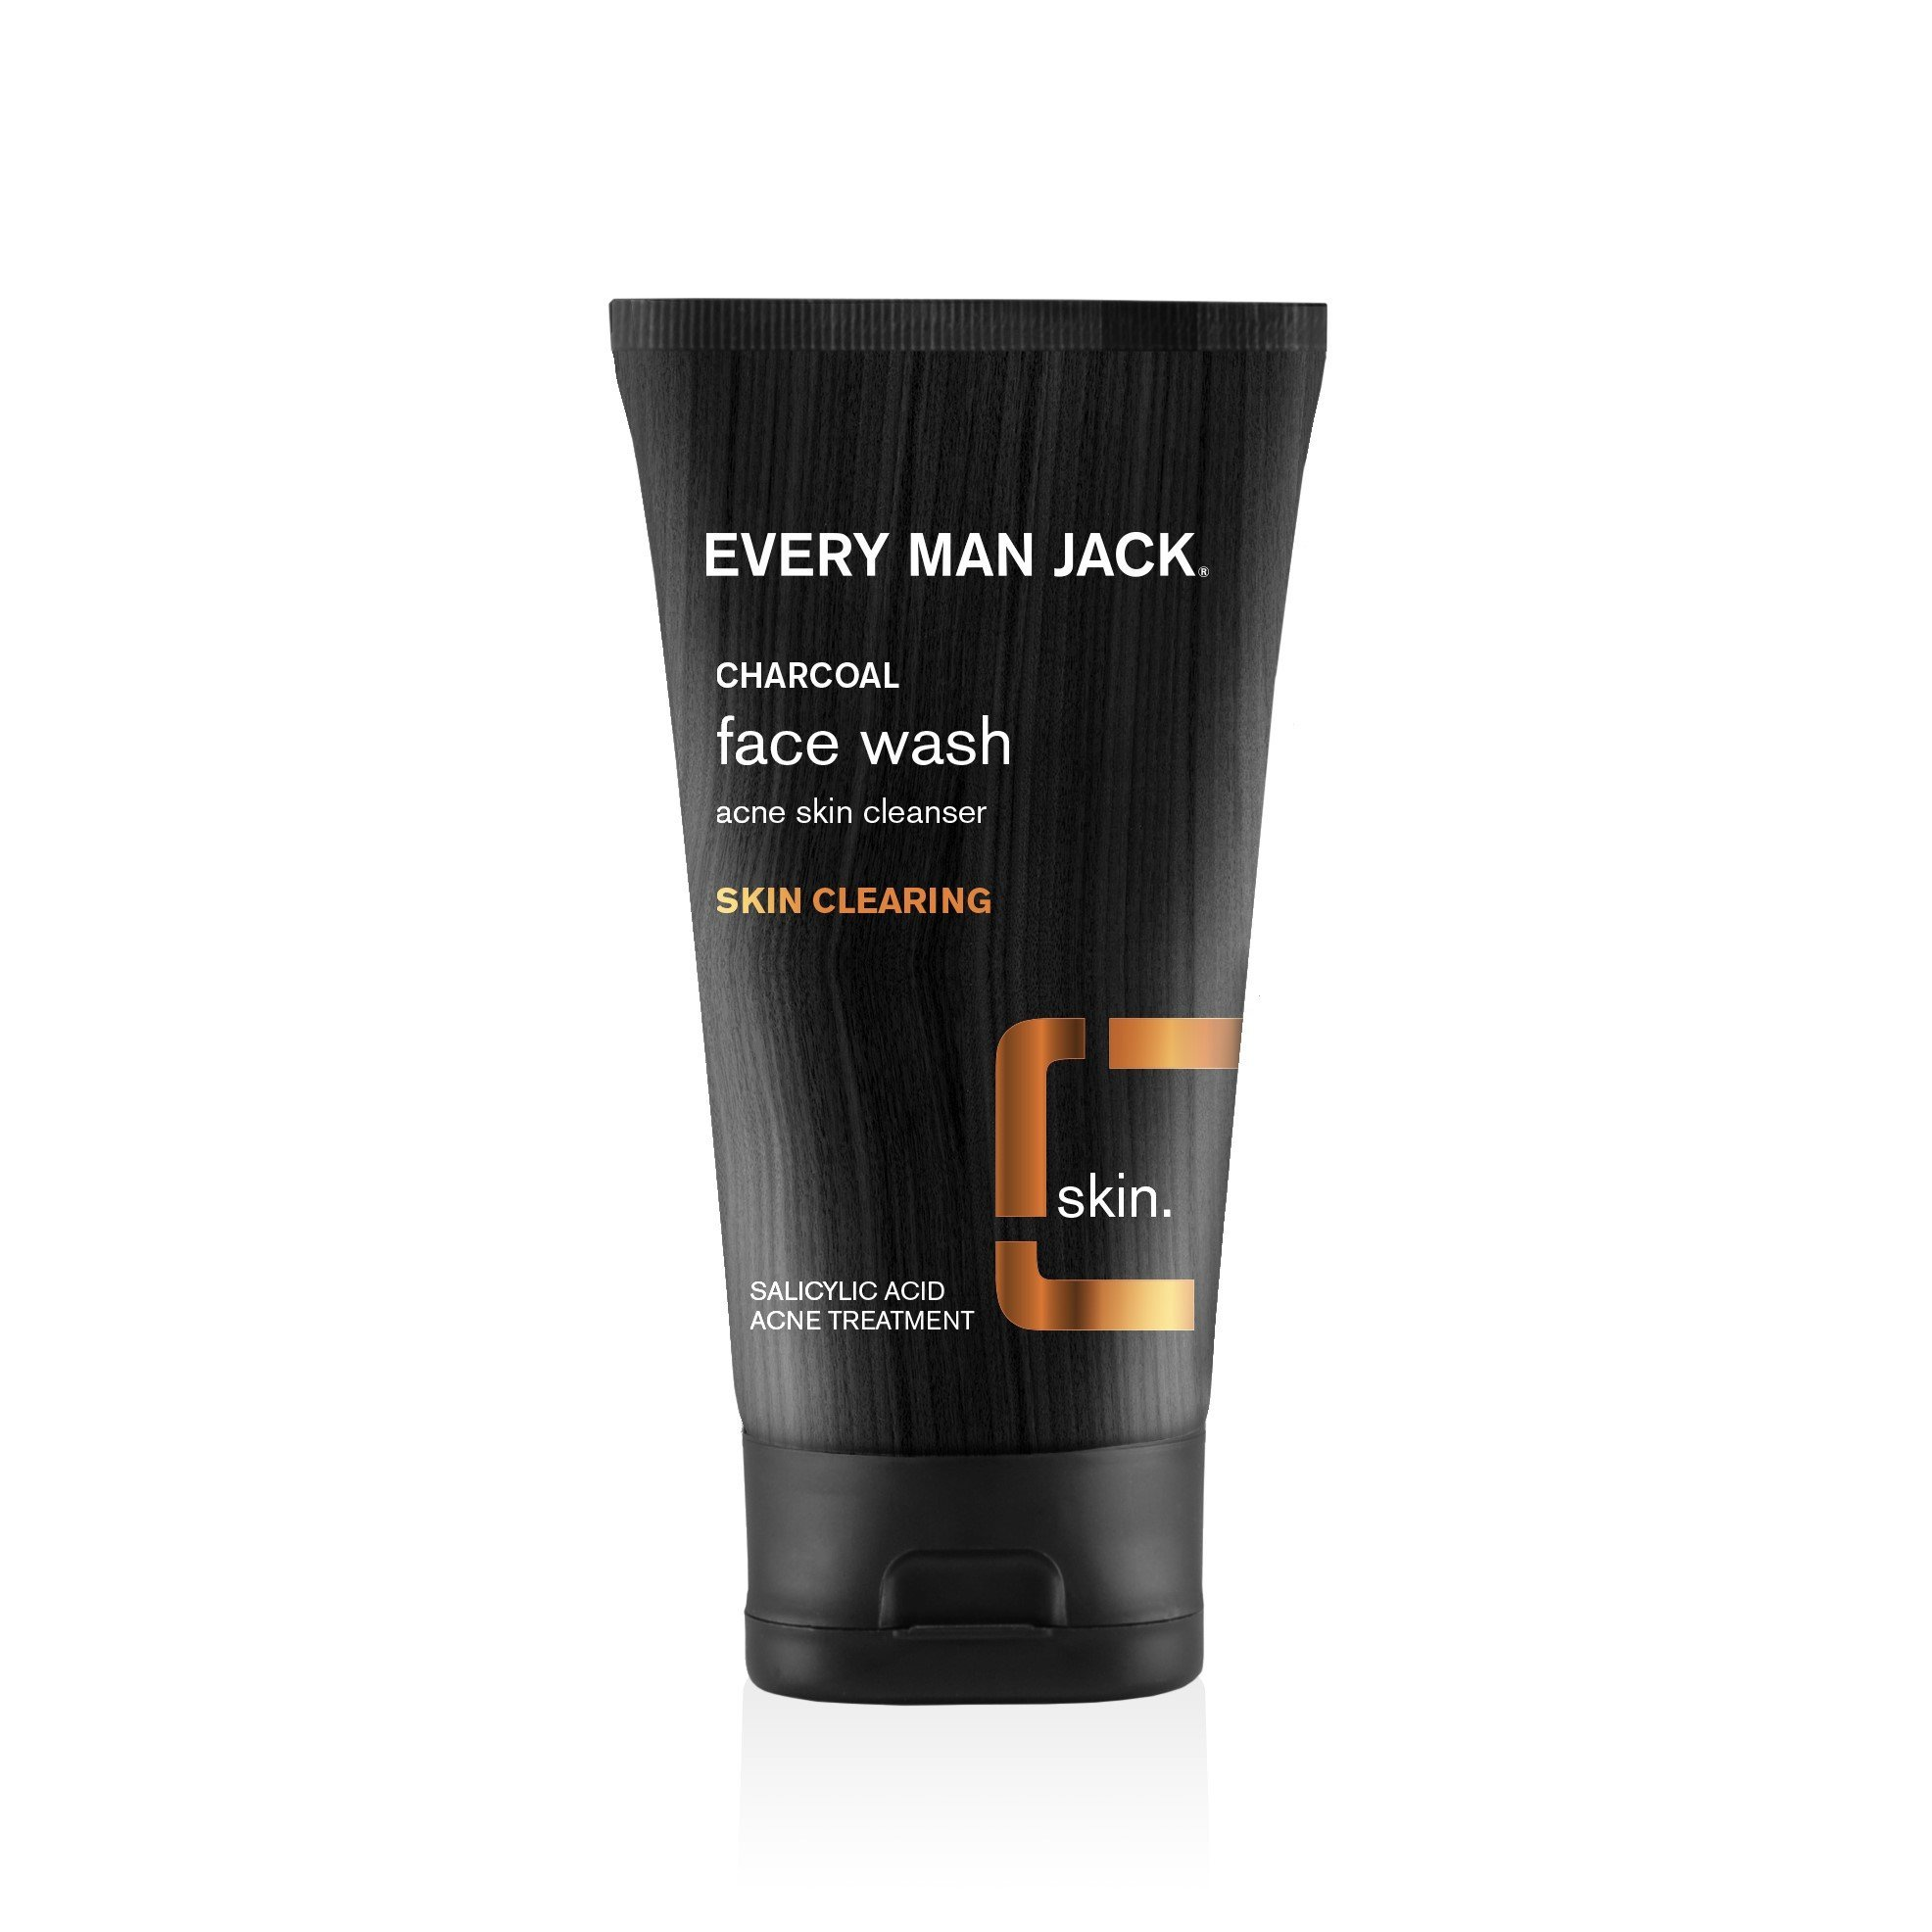 Every Man Jack Skin Clearing Face Wash, Fragrance Free, 5 Fluid Ounce